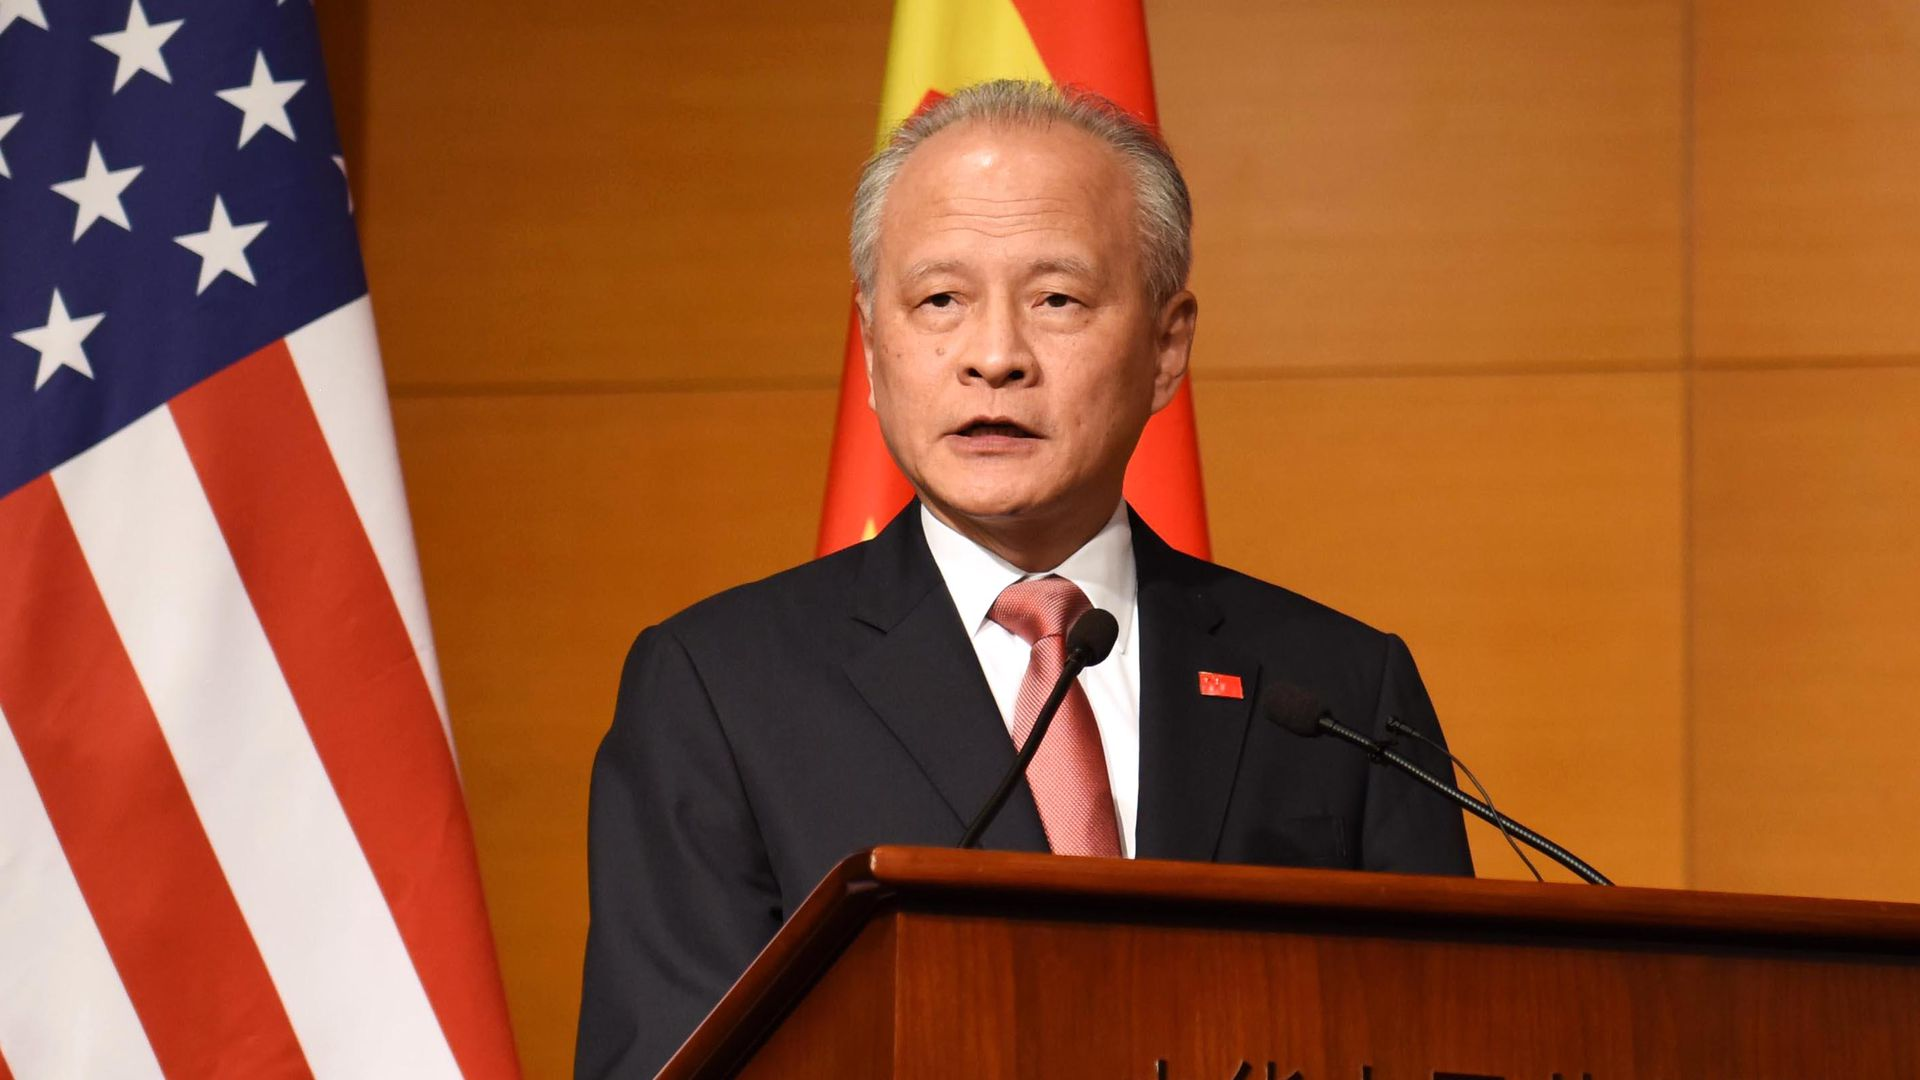 Chinese Ambassador to the United States Cui Tiankai at the Chinese Embassy on July 30, 2018 in Washington, DC.